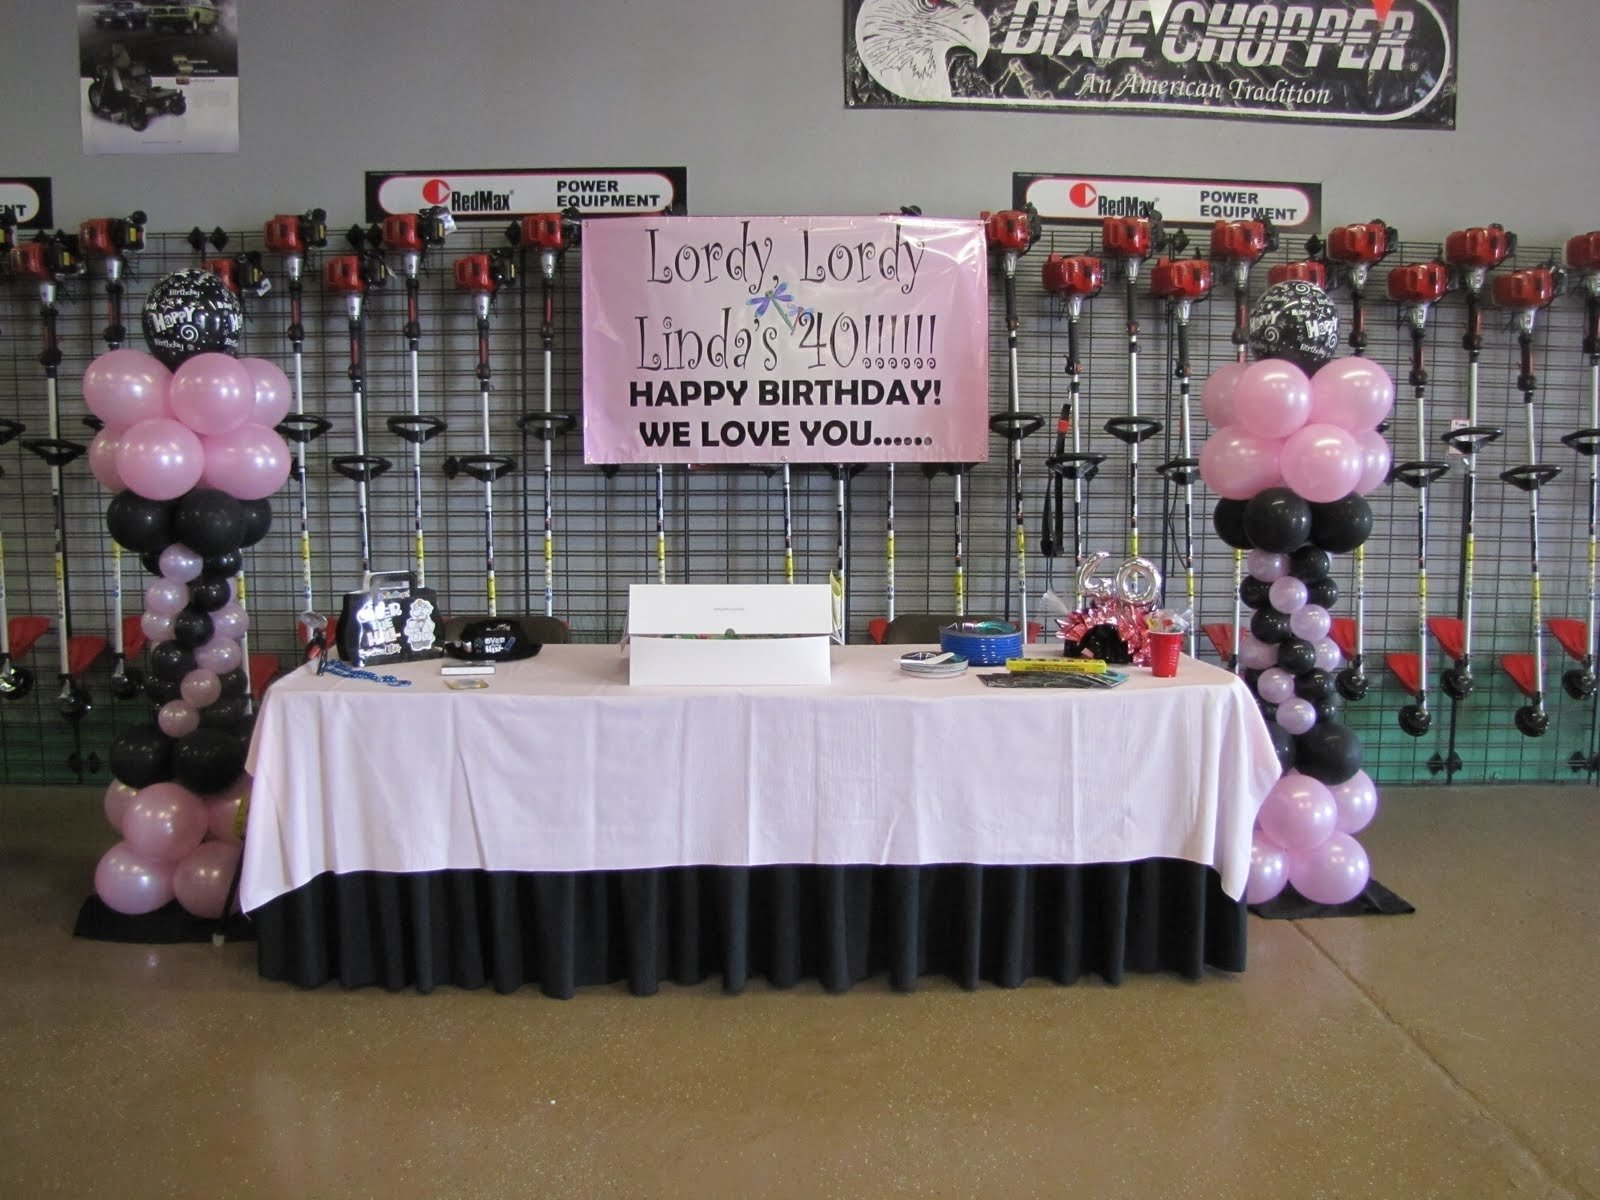 10 Most Popular Ideas For A 40Th Birthday Party minus the backgroundcute idea for 40th birthday birthdays and 4 2020